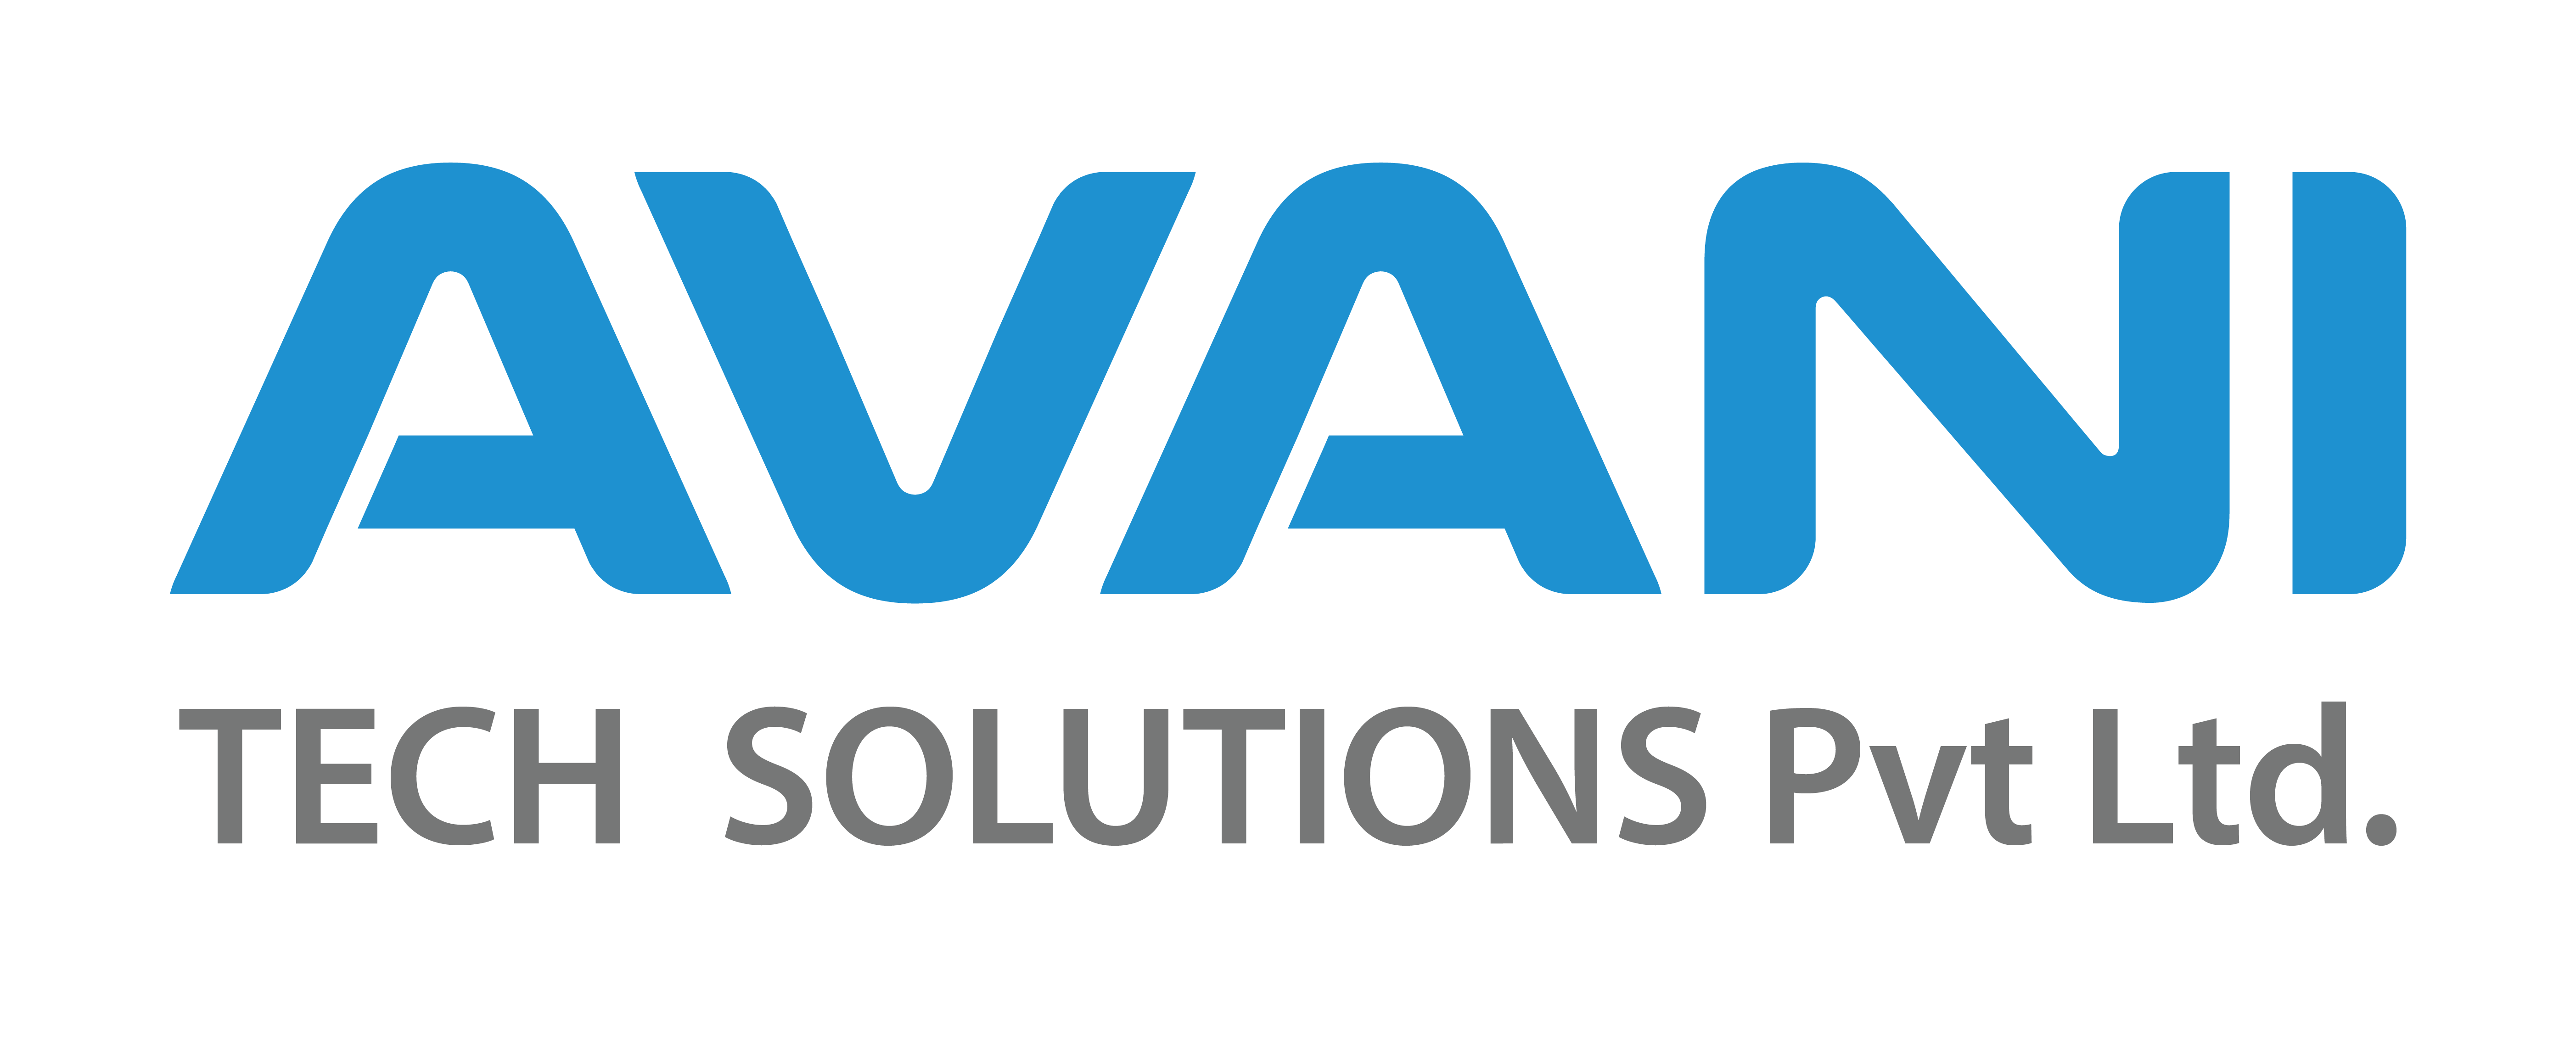 Avani Tech Solutions Pvt Ltd.